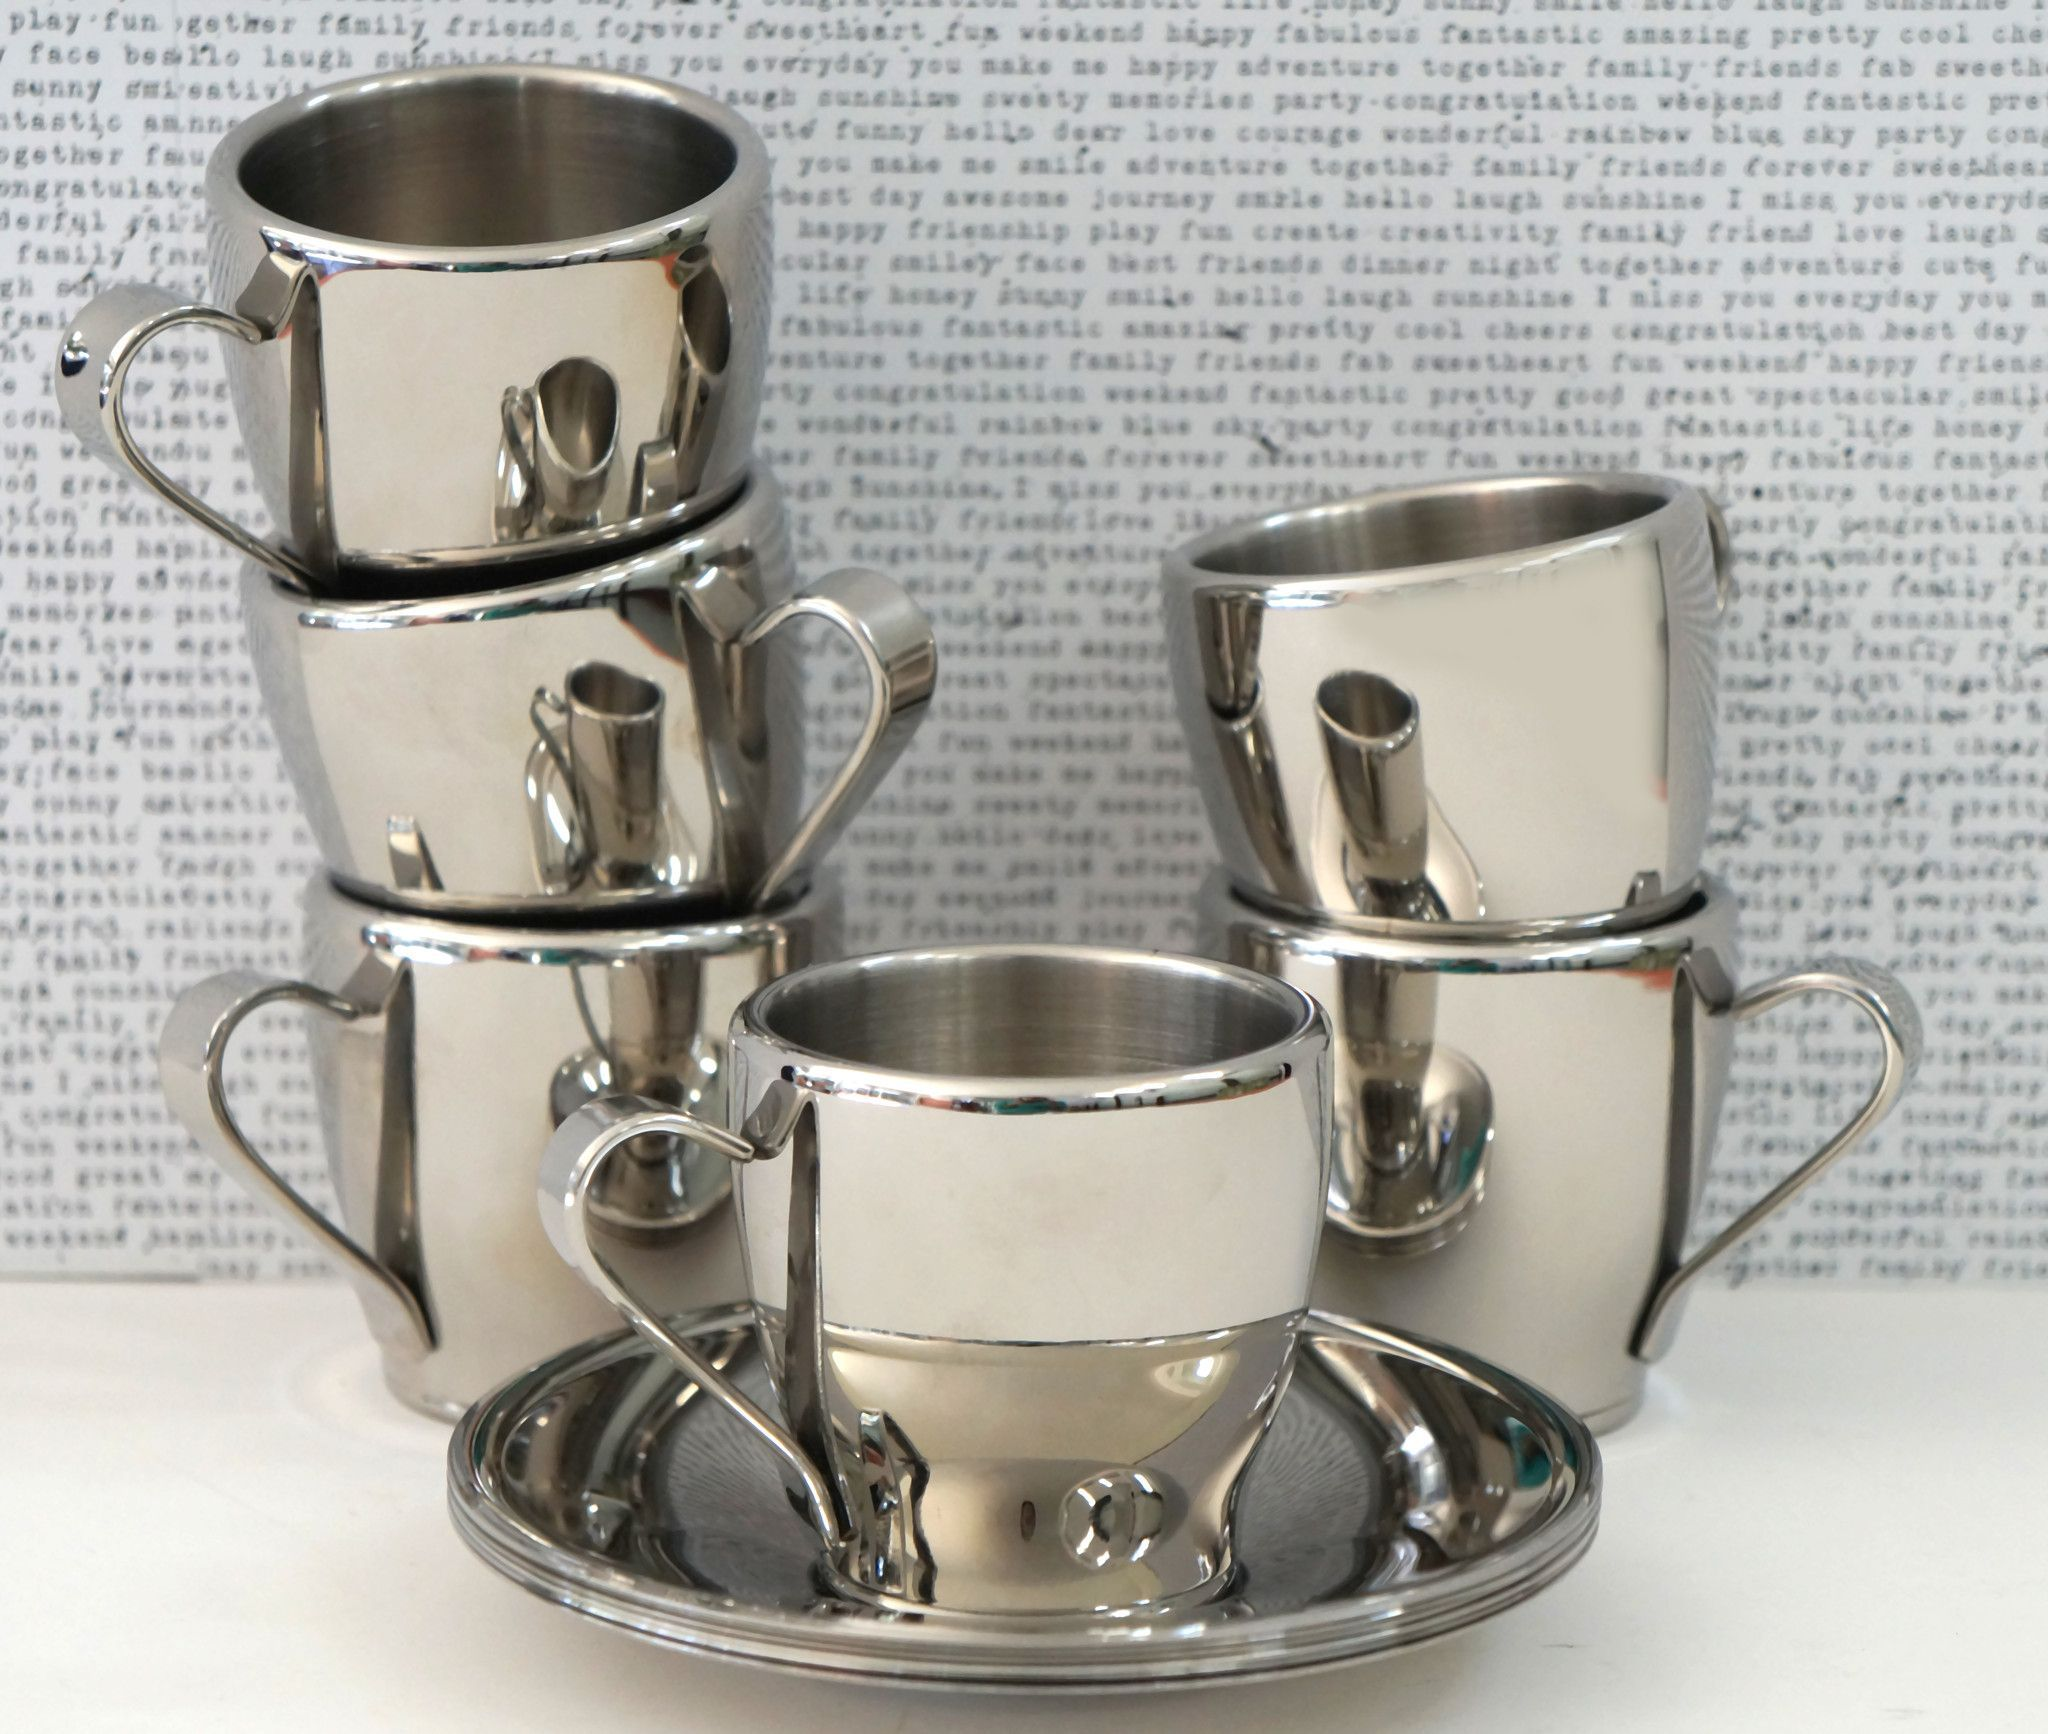 Crate barrel stainless steel espresso cup saucer set